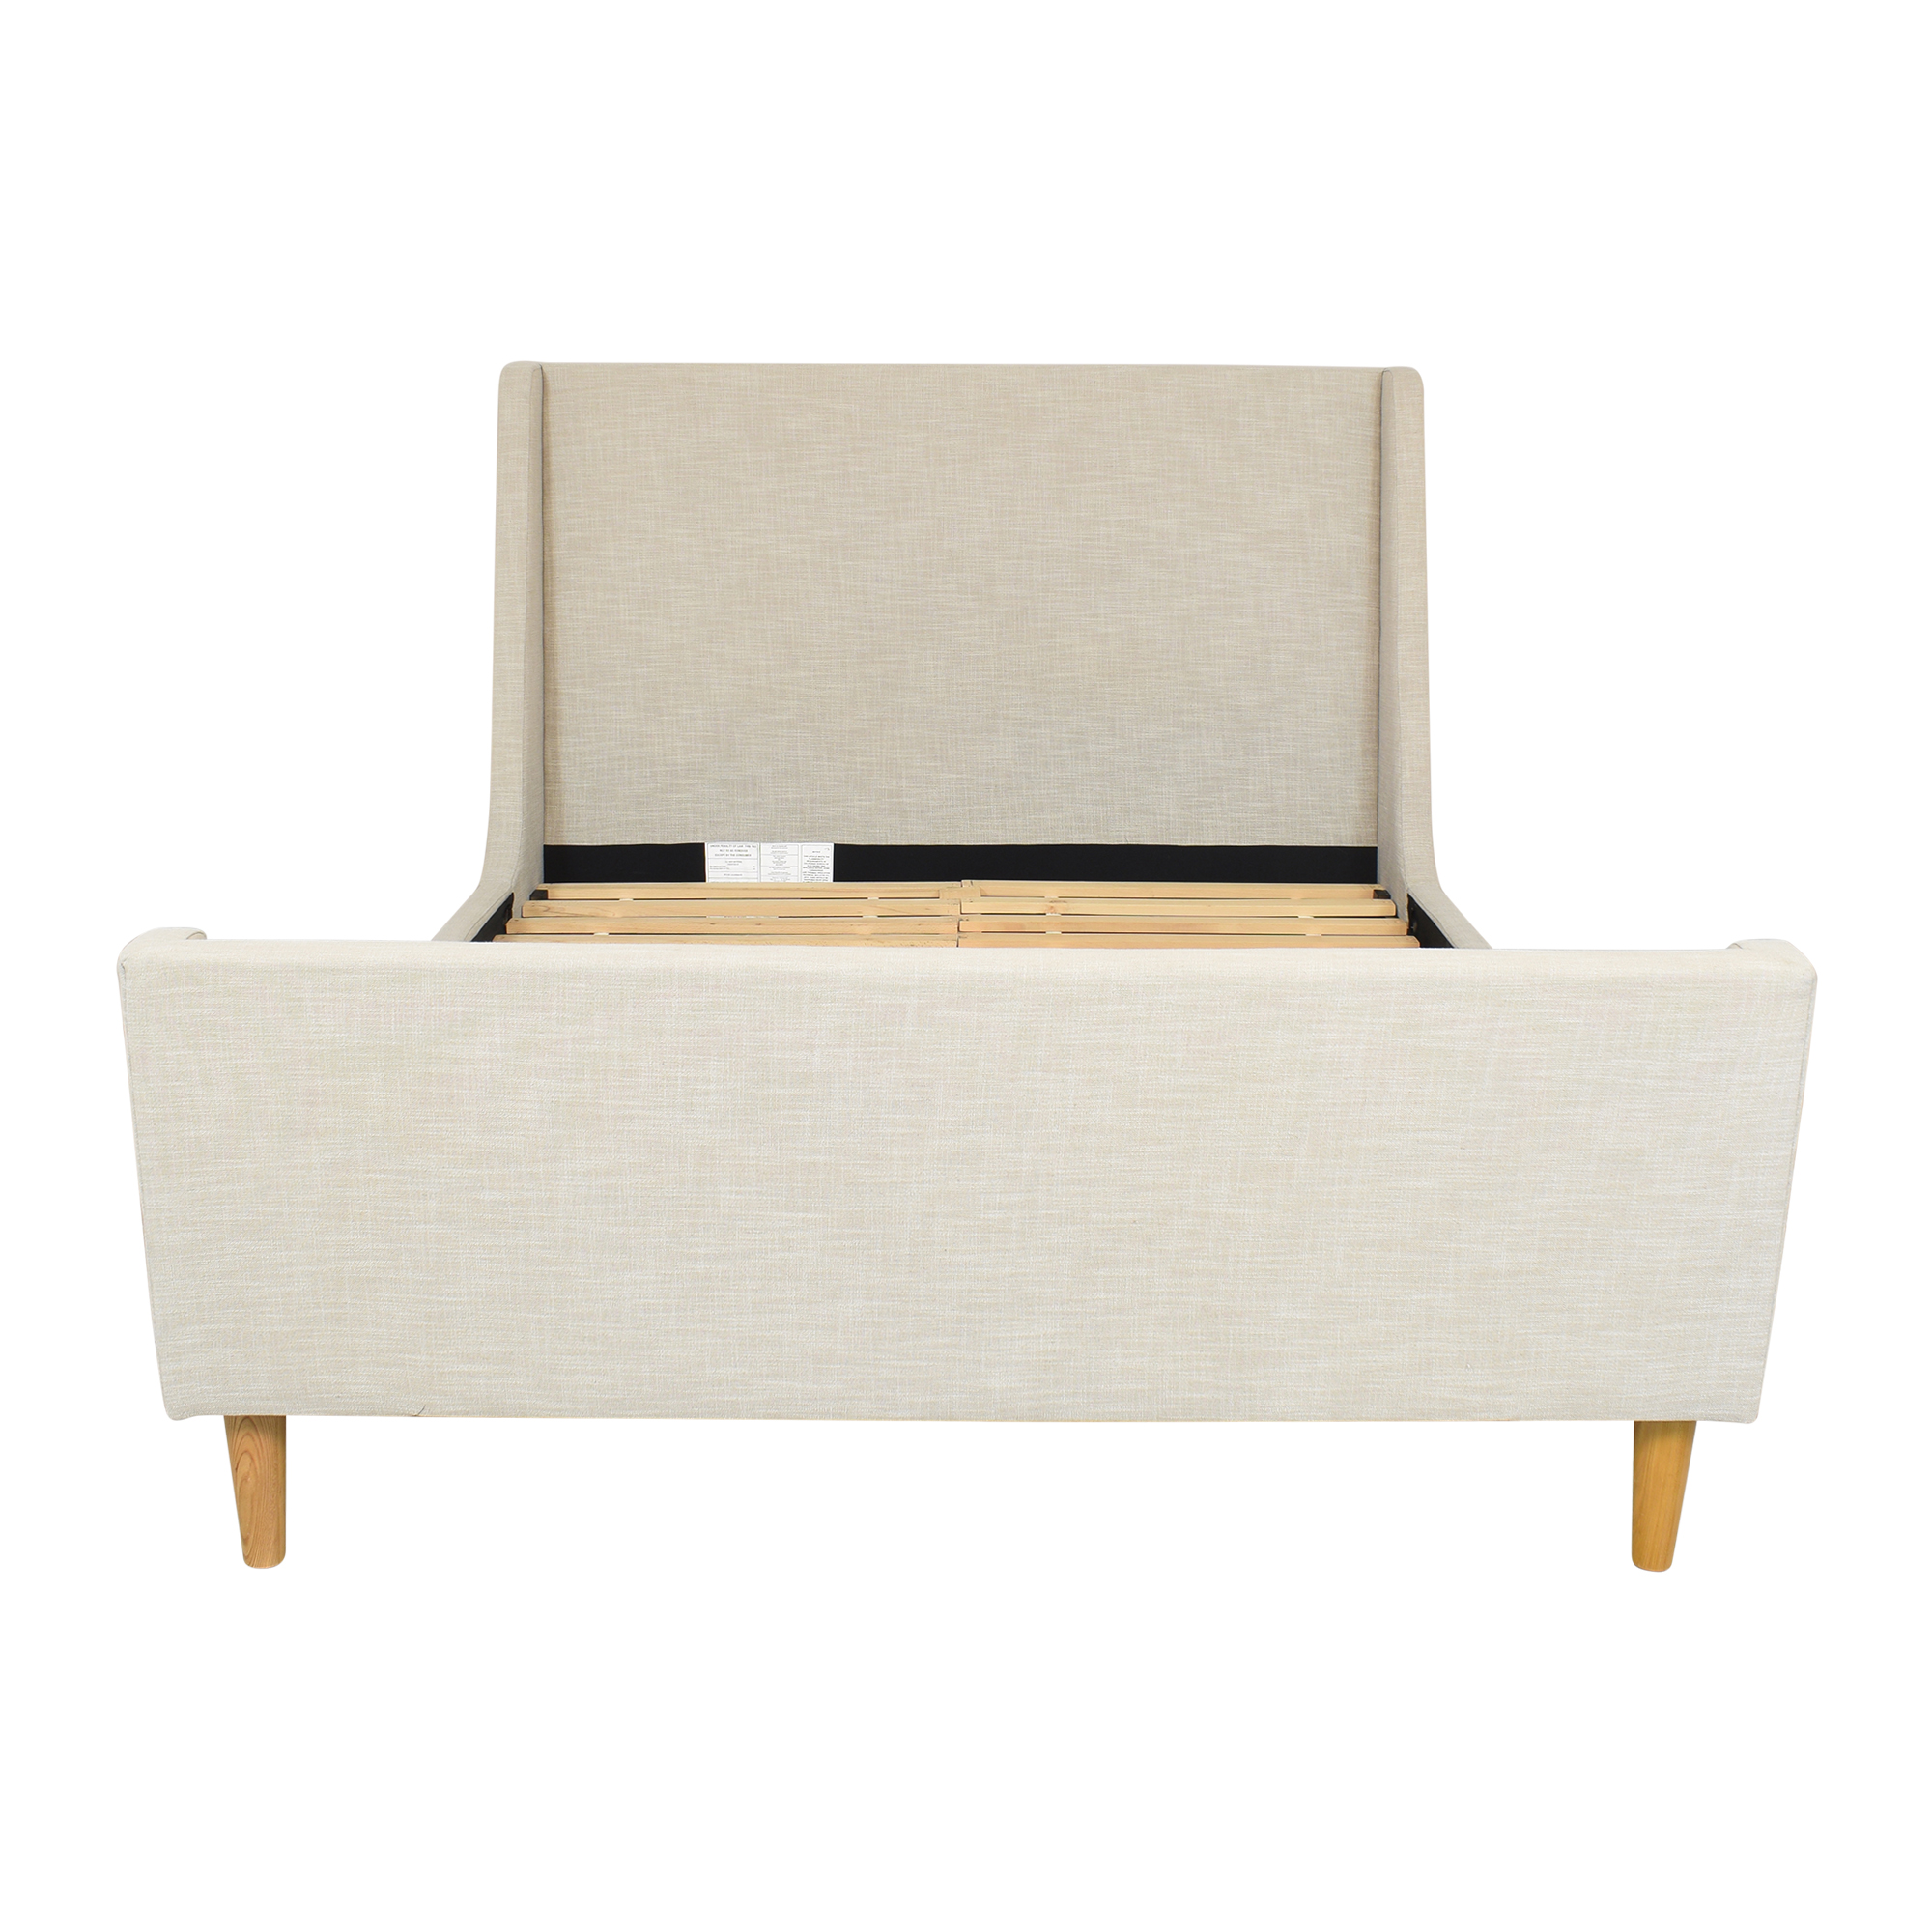 West Elm West Elm Queen Upholstered Sleigh Bed Bed Frames